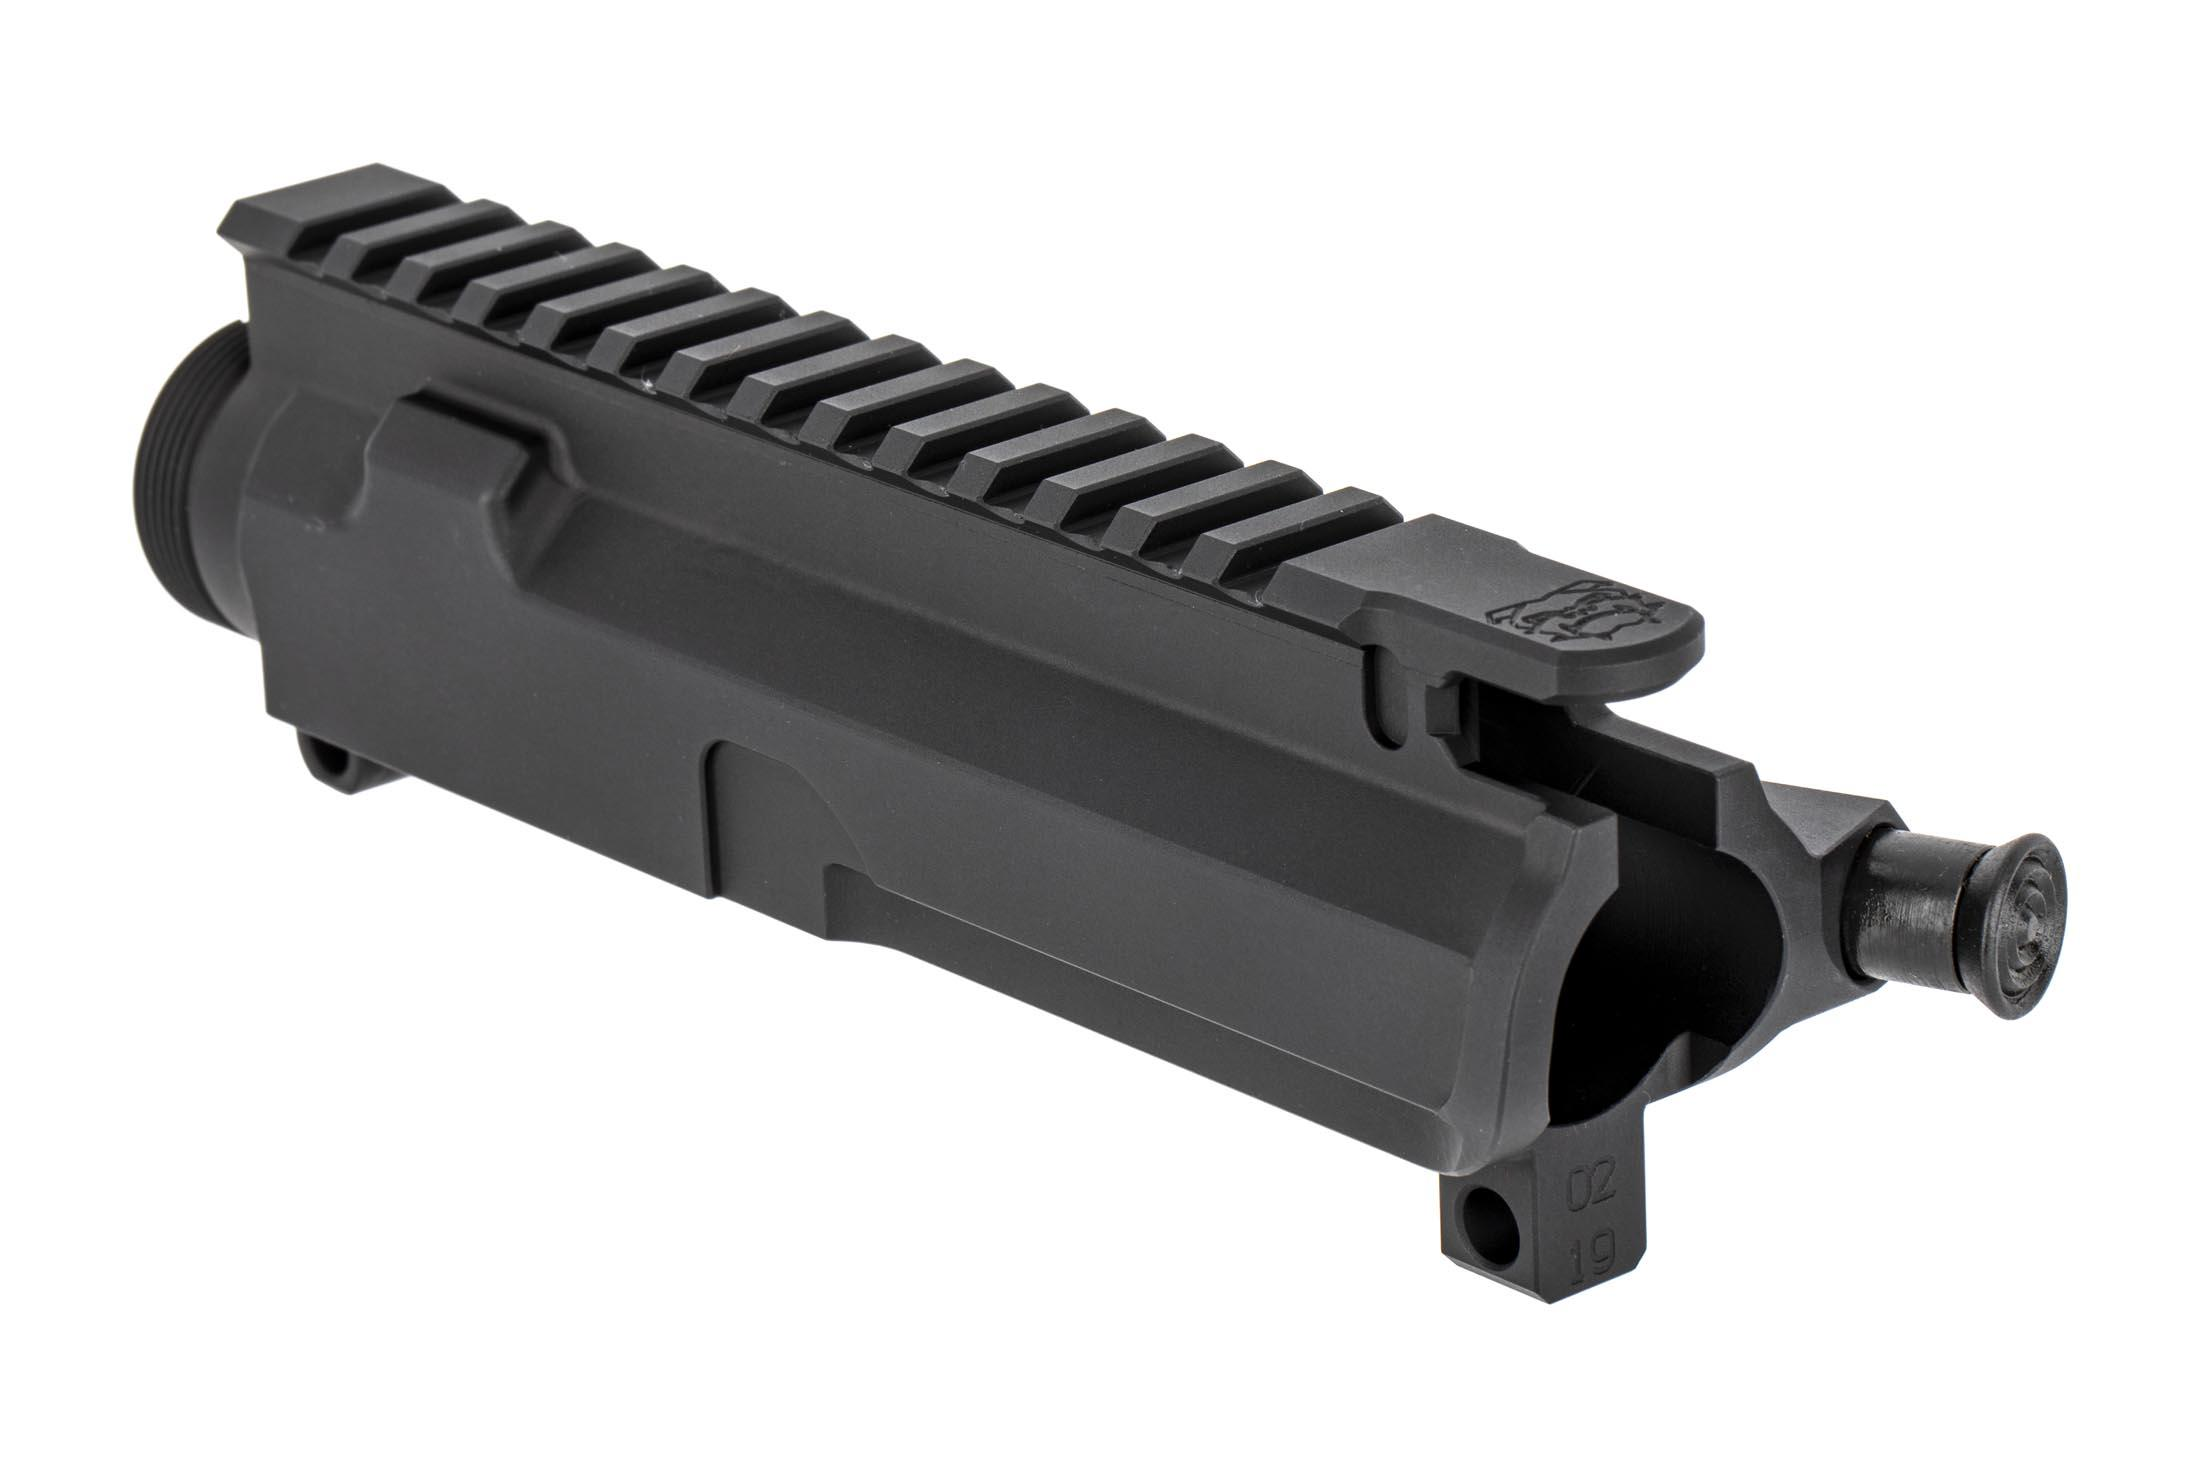 Rosco Manufacturing Purebred billet AR15 upper receiver assembly are precision cut by American Defense Mfg.